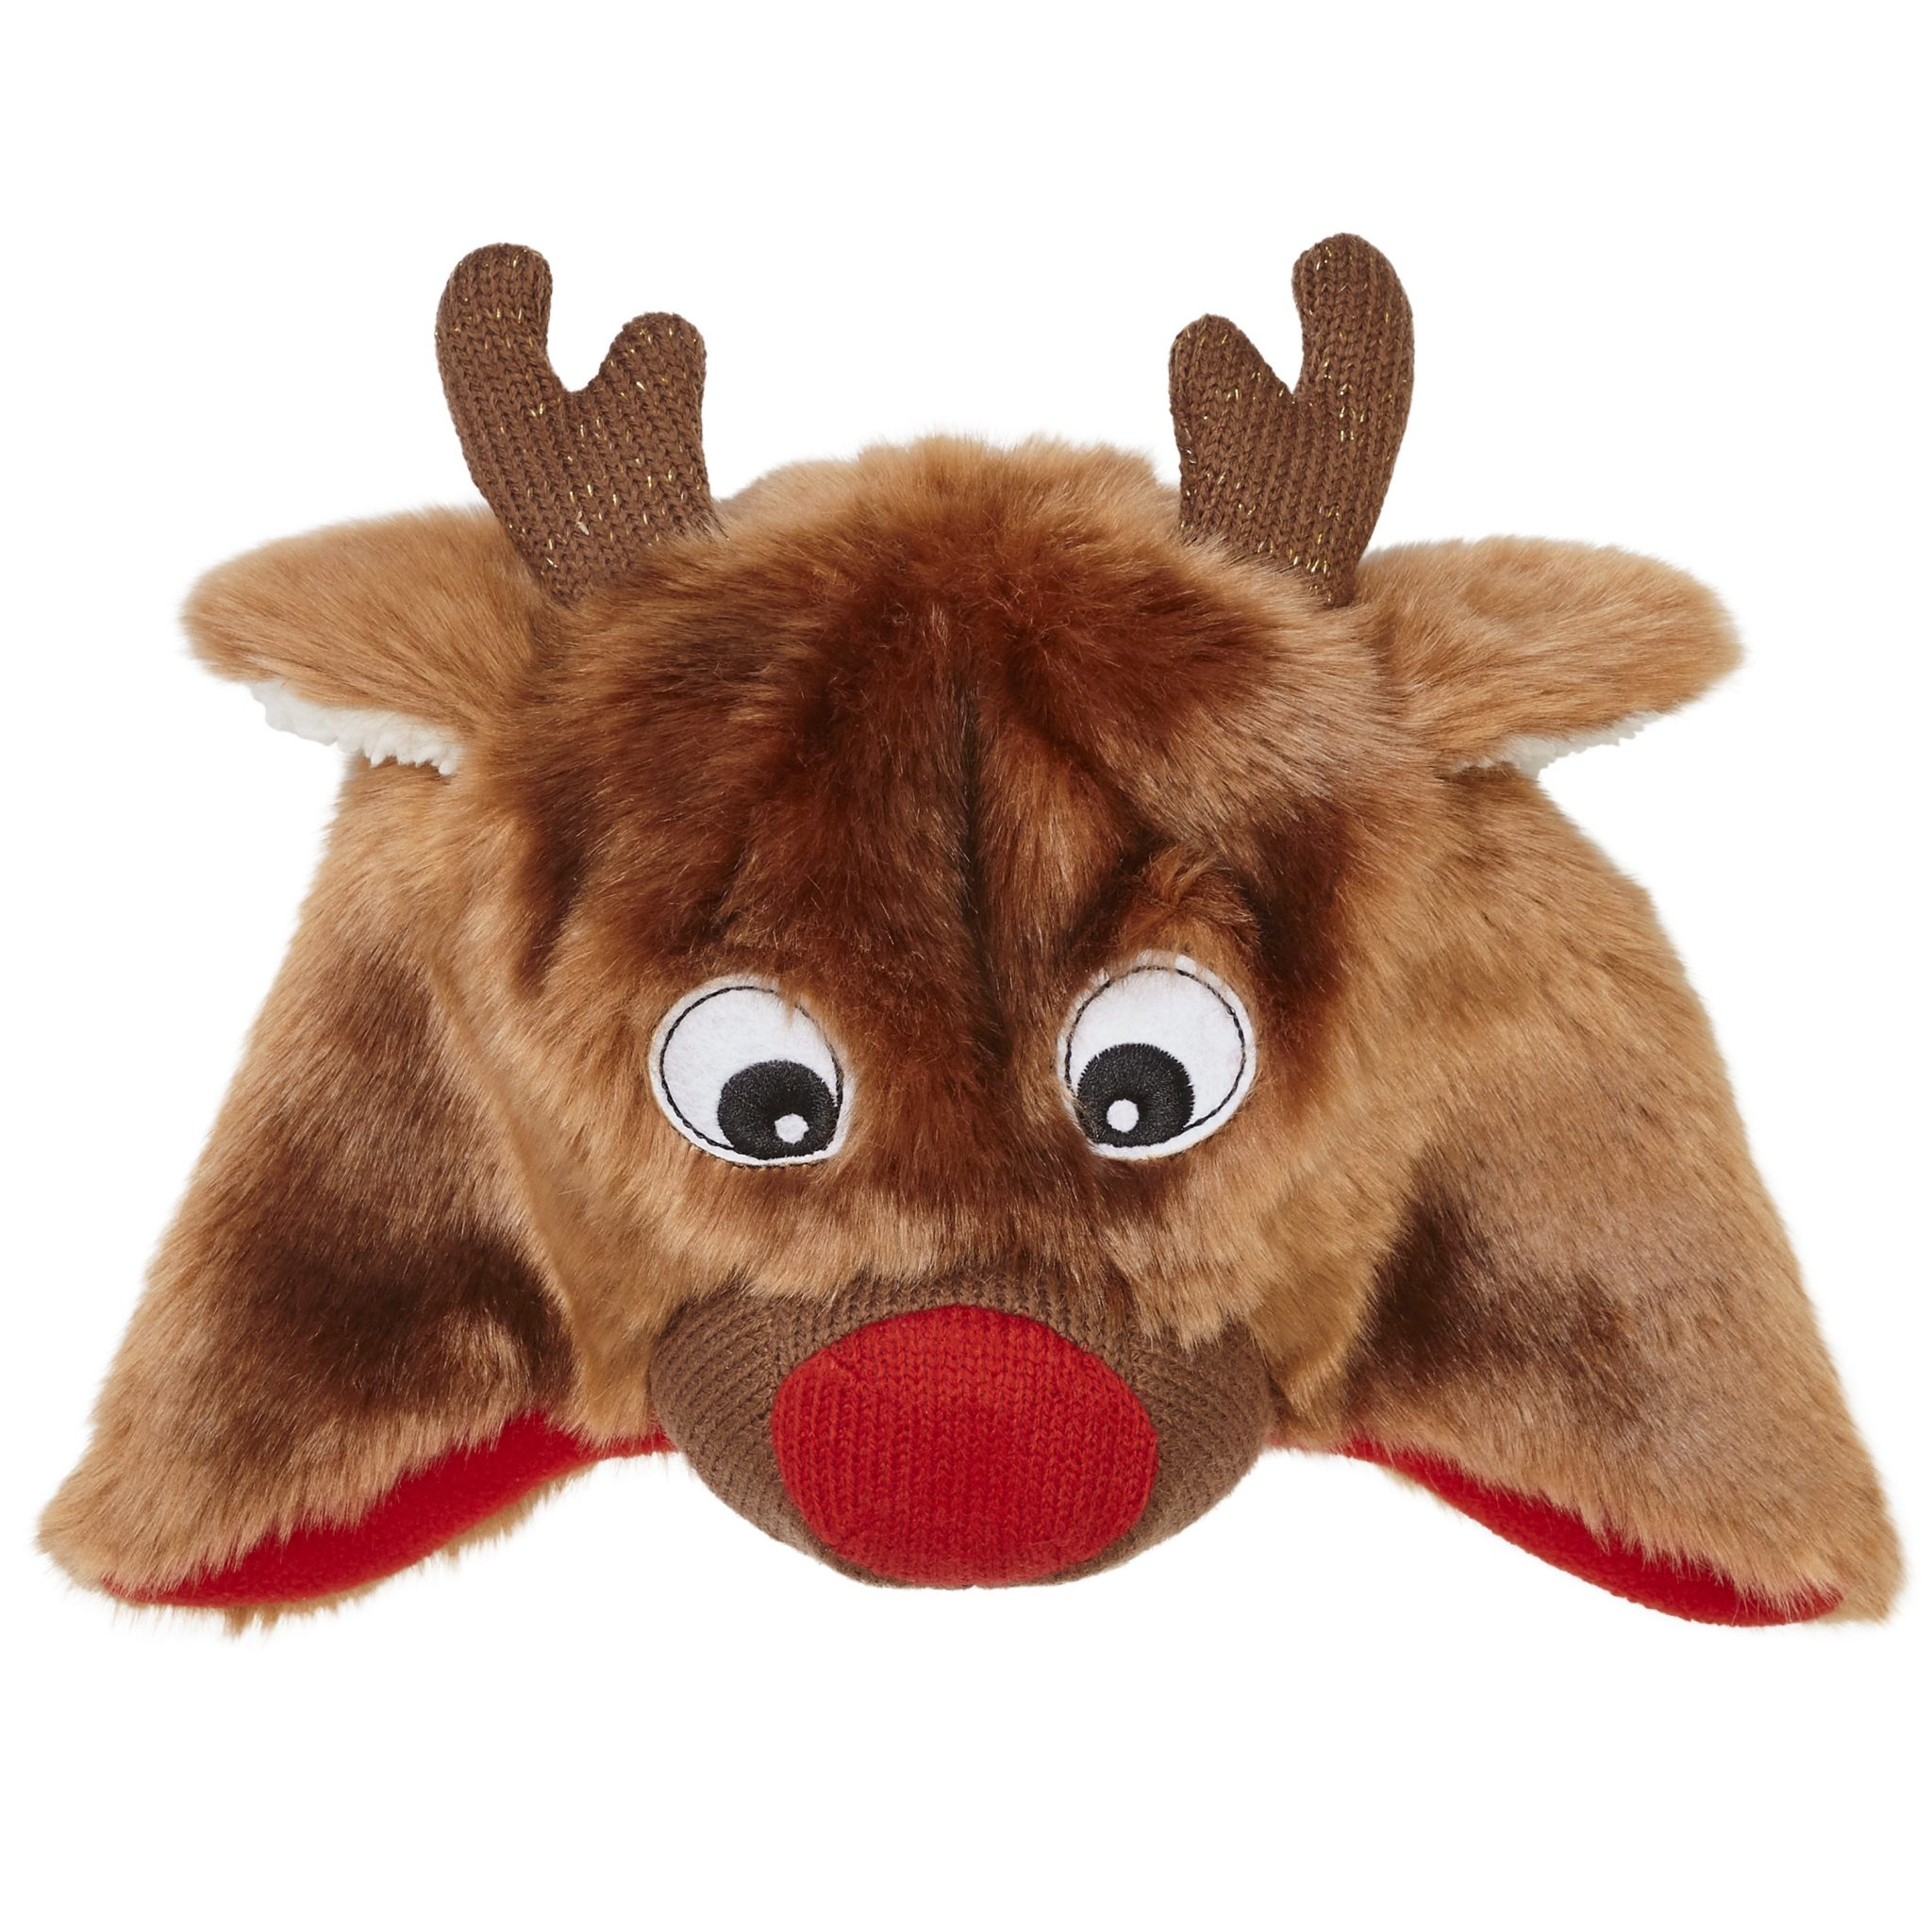 ff-a-hat-with-a-heart-musical-reindeer-trapper-hat-9